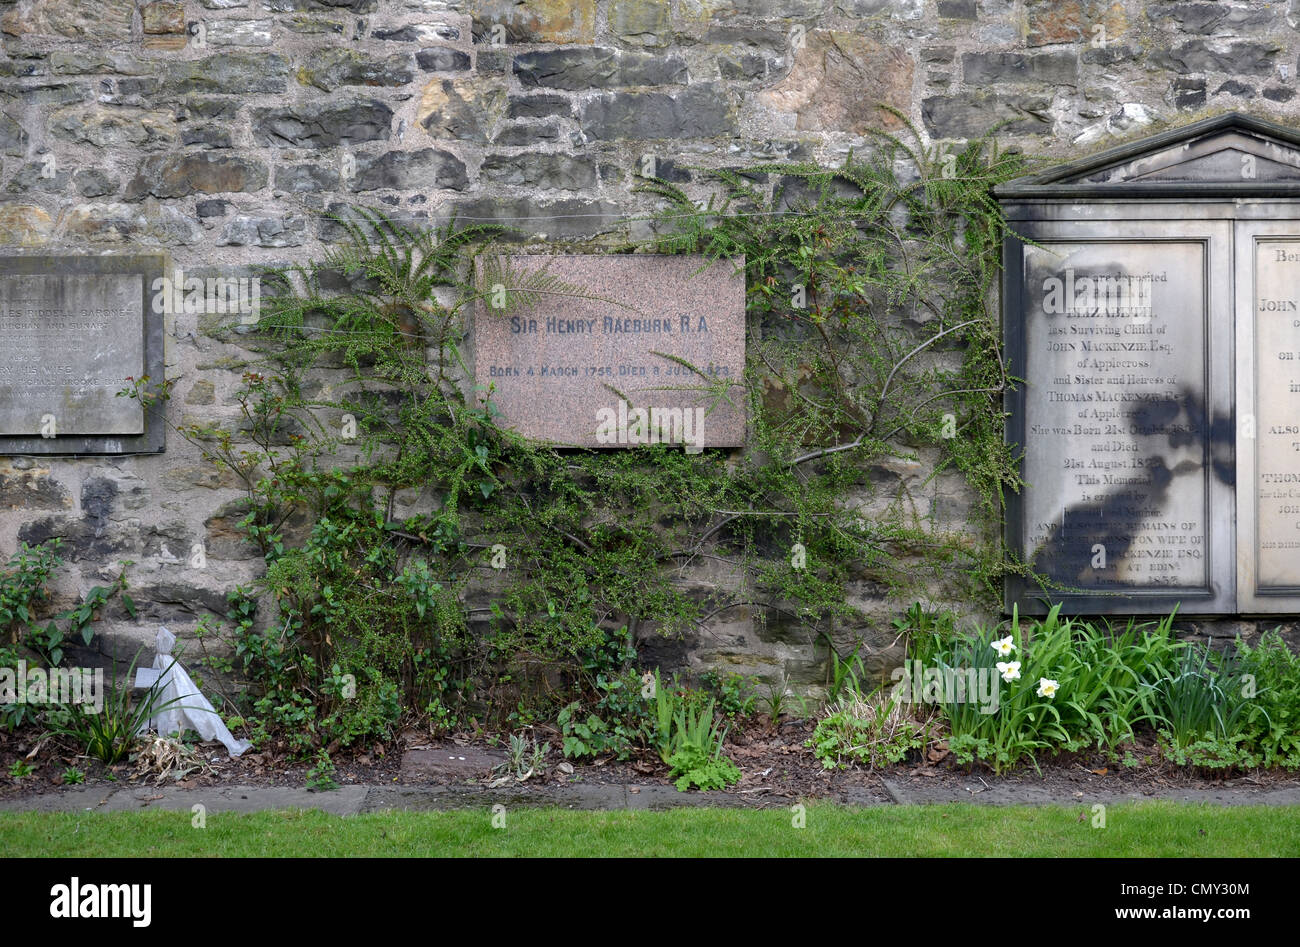 Henry Raeburn Stock Photos & Henry Raeburn Stock Images - Alamy